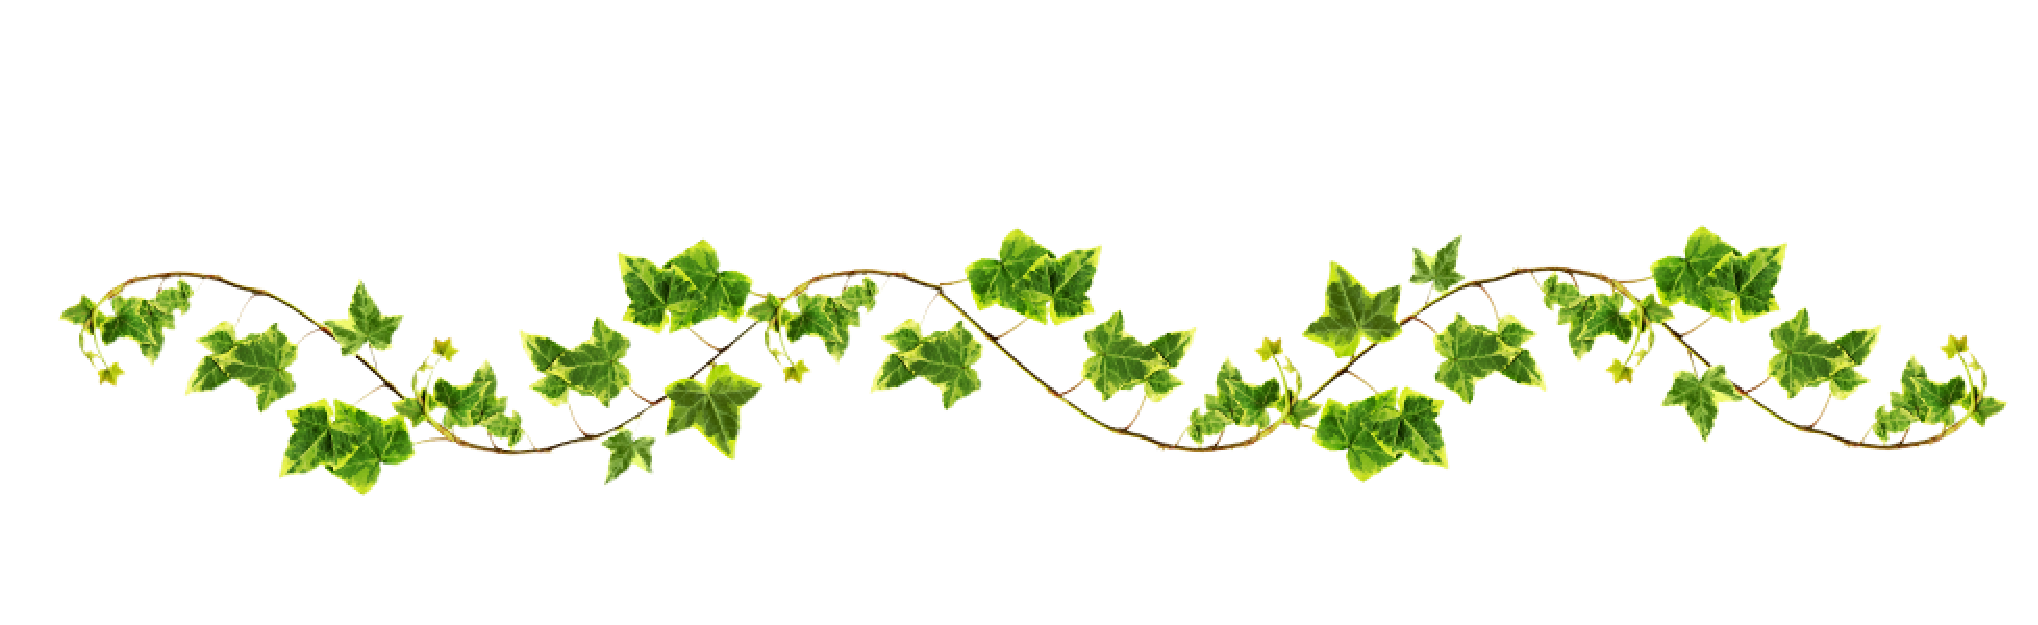 Floral vines png. Vine with maple like